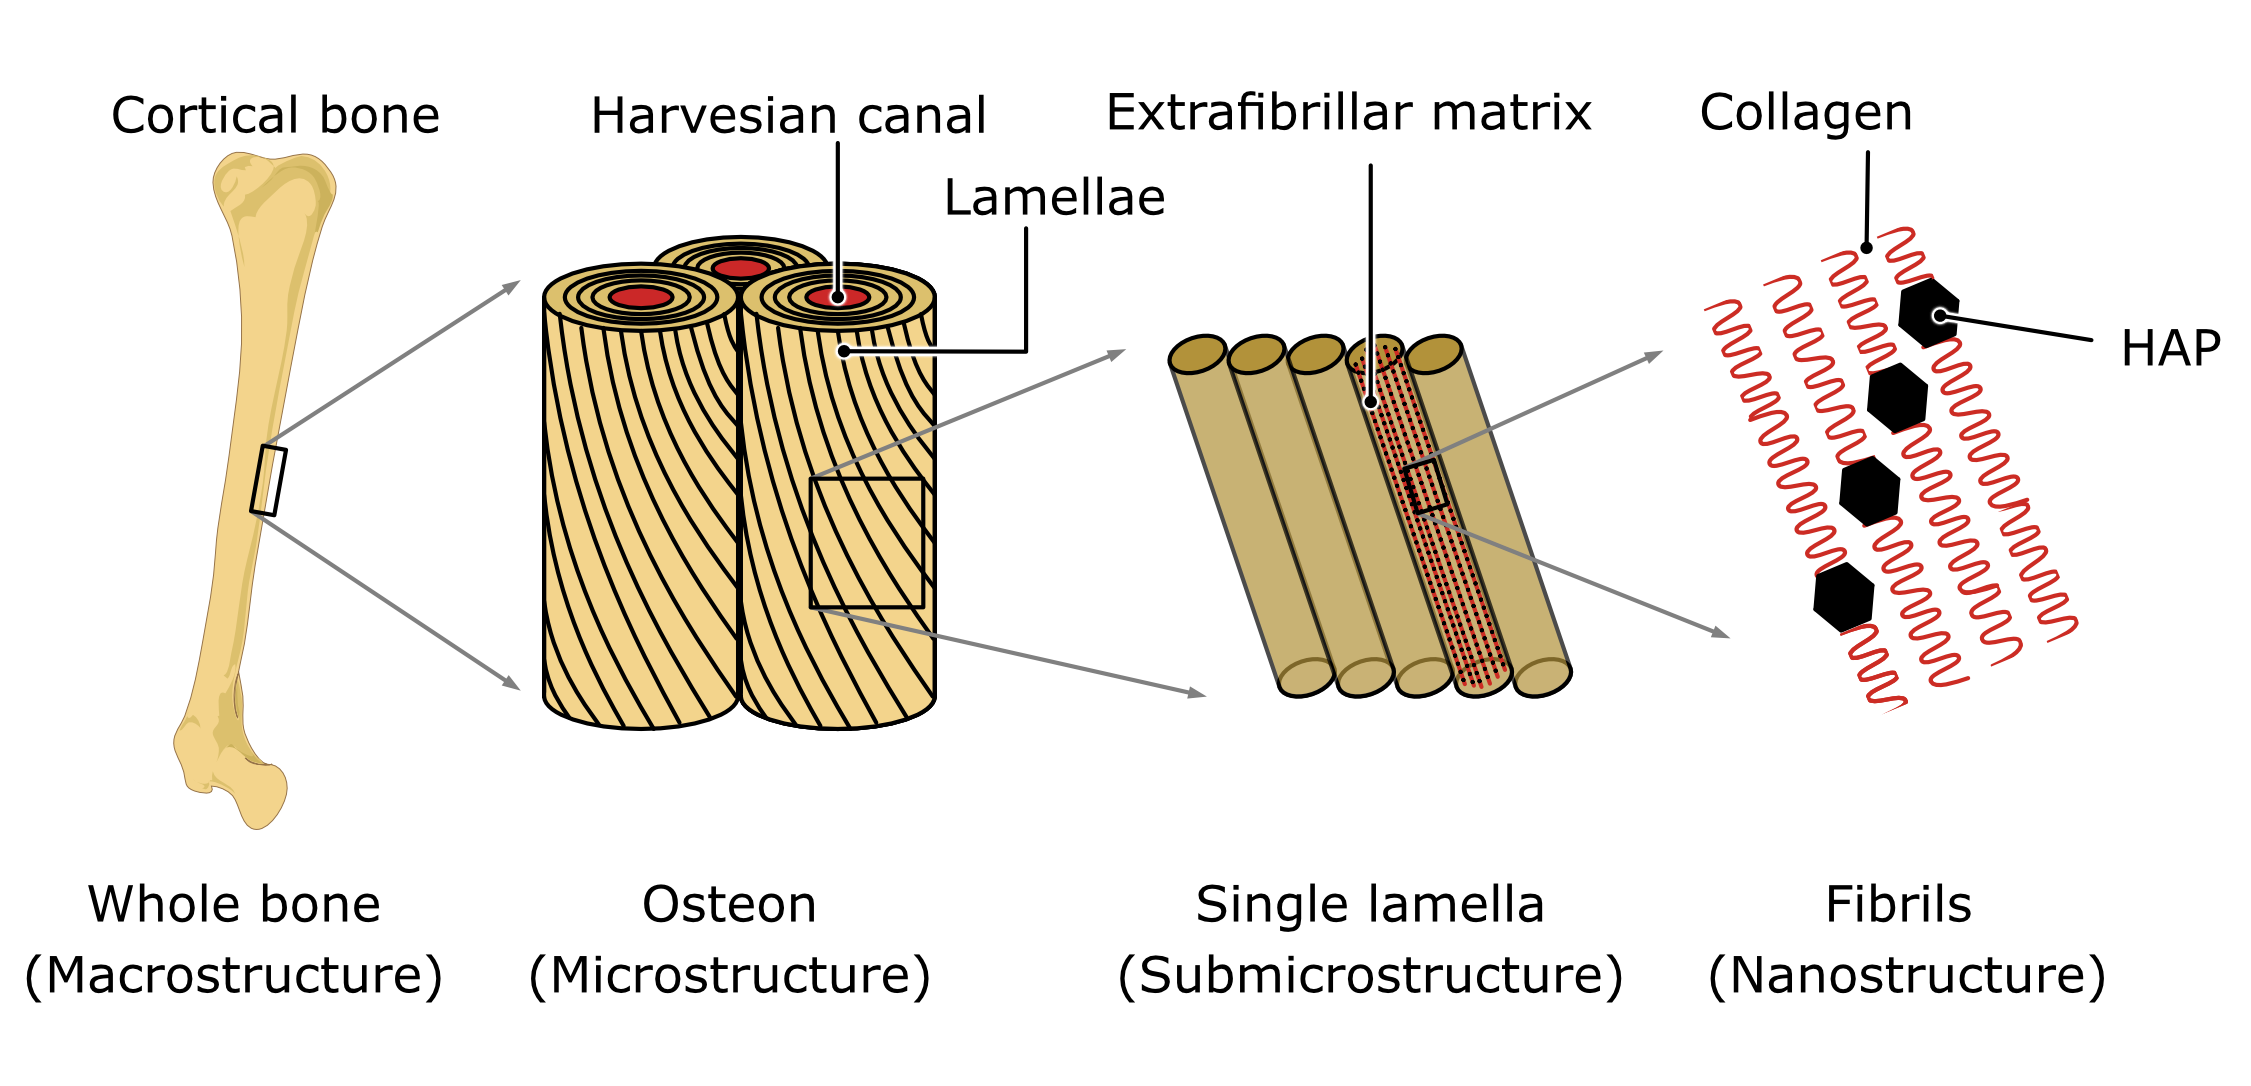 Schematic showing a bone on the left handside, a close-up reveals cylindric structures called the osteons. They consist of different layers called lamellae, which are again shown in a close-up to be composites of extrafibrillar matrices, containing fibrils. Those fibrils consist of HAP crystals which are depicted as black hexagons connected by collagen.